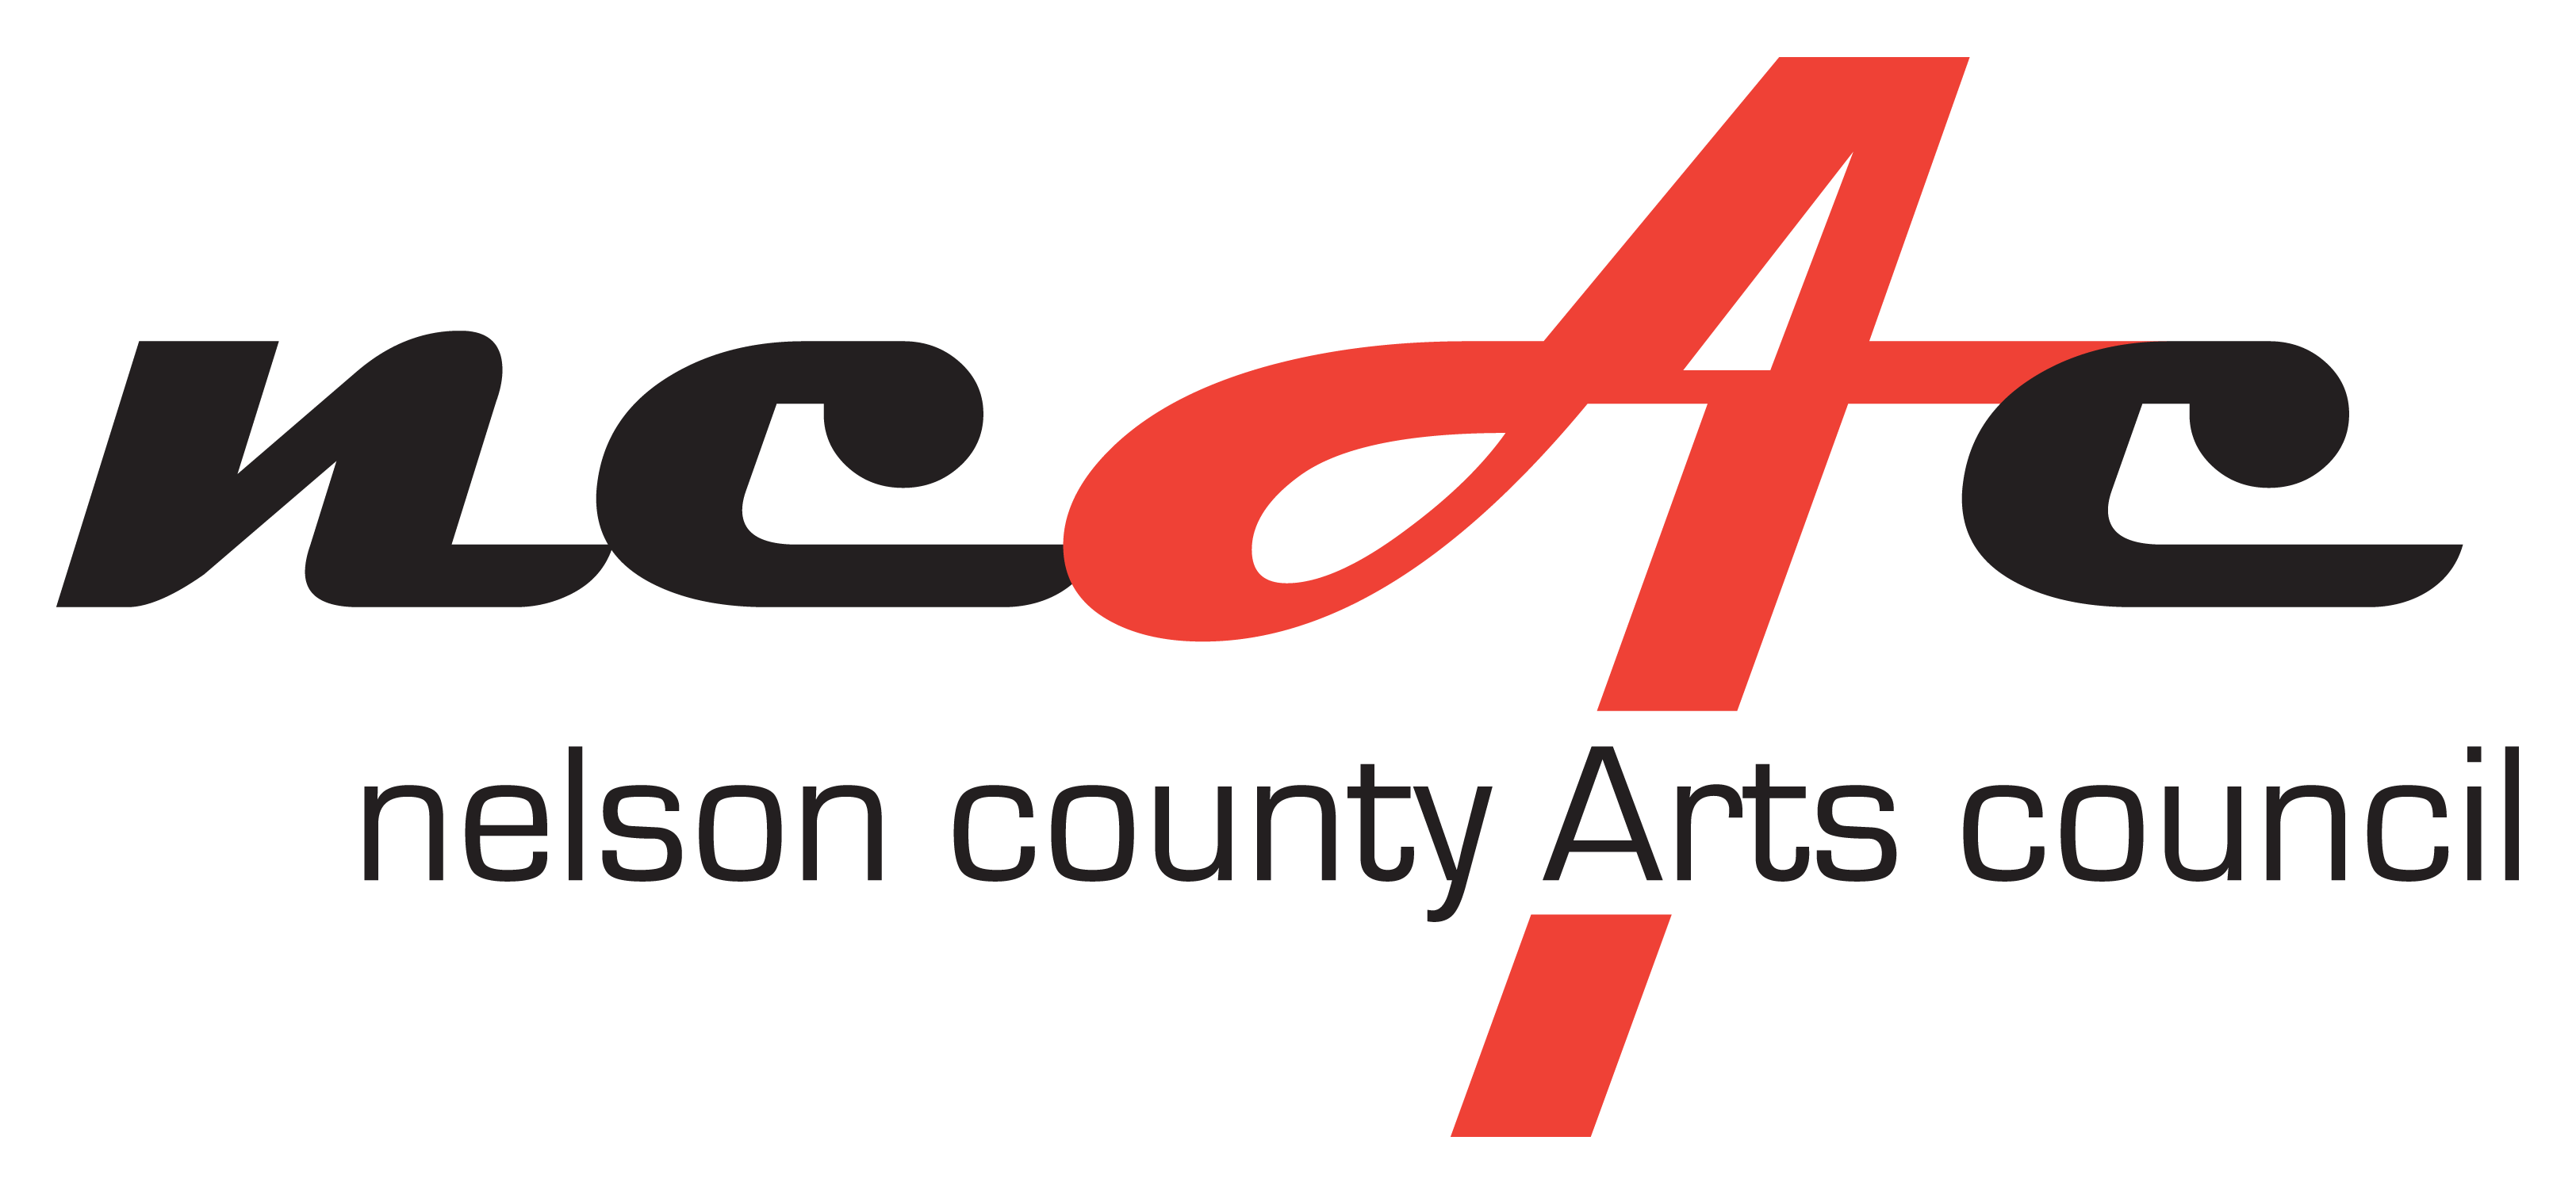 Nelson County Arts Council